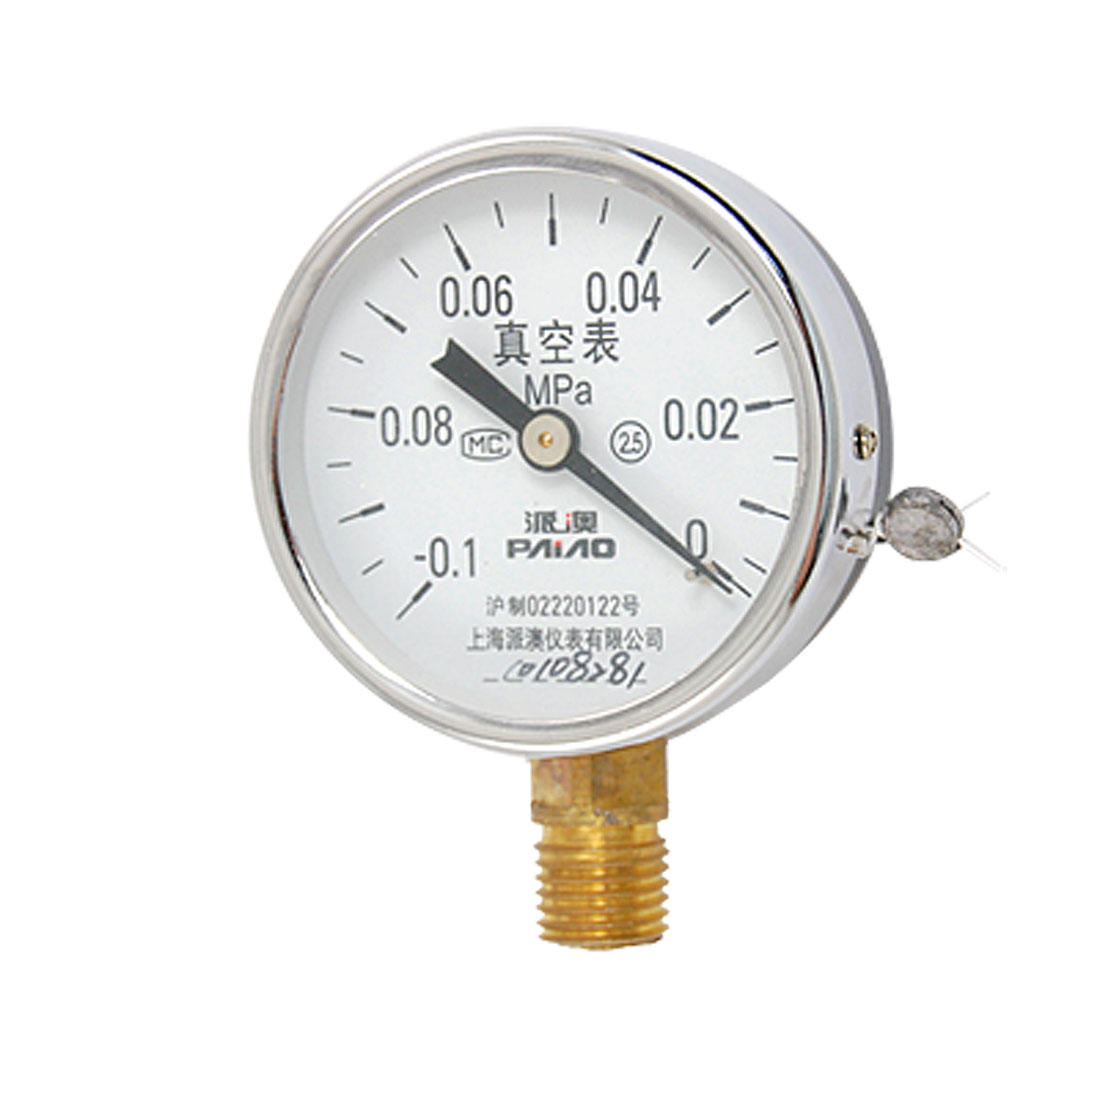 Pneumatic -0.1MPa to 0MPa Ranged 60mm Dia Case Air Pressure Test Gauge